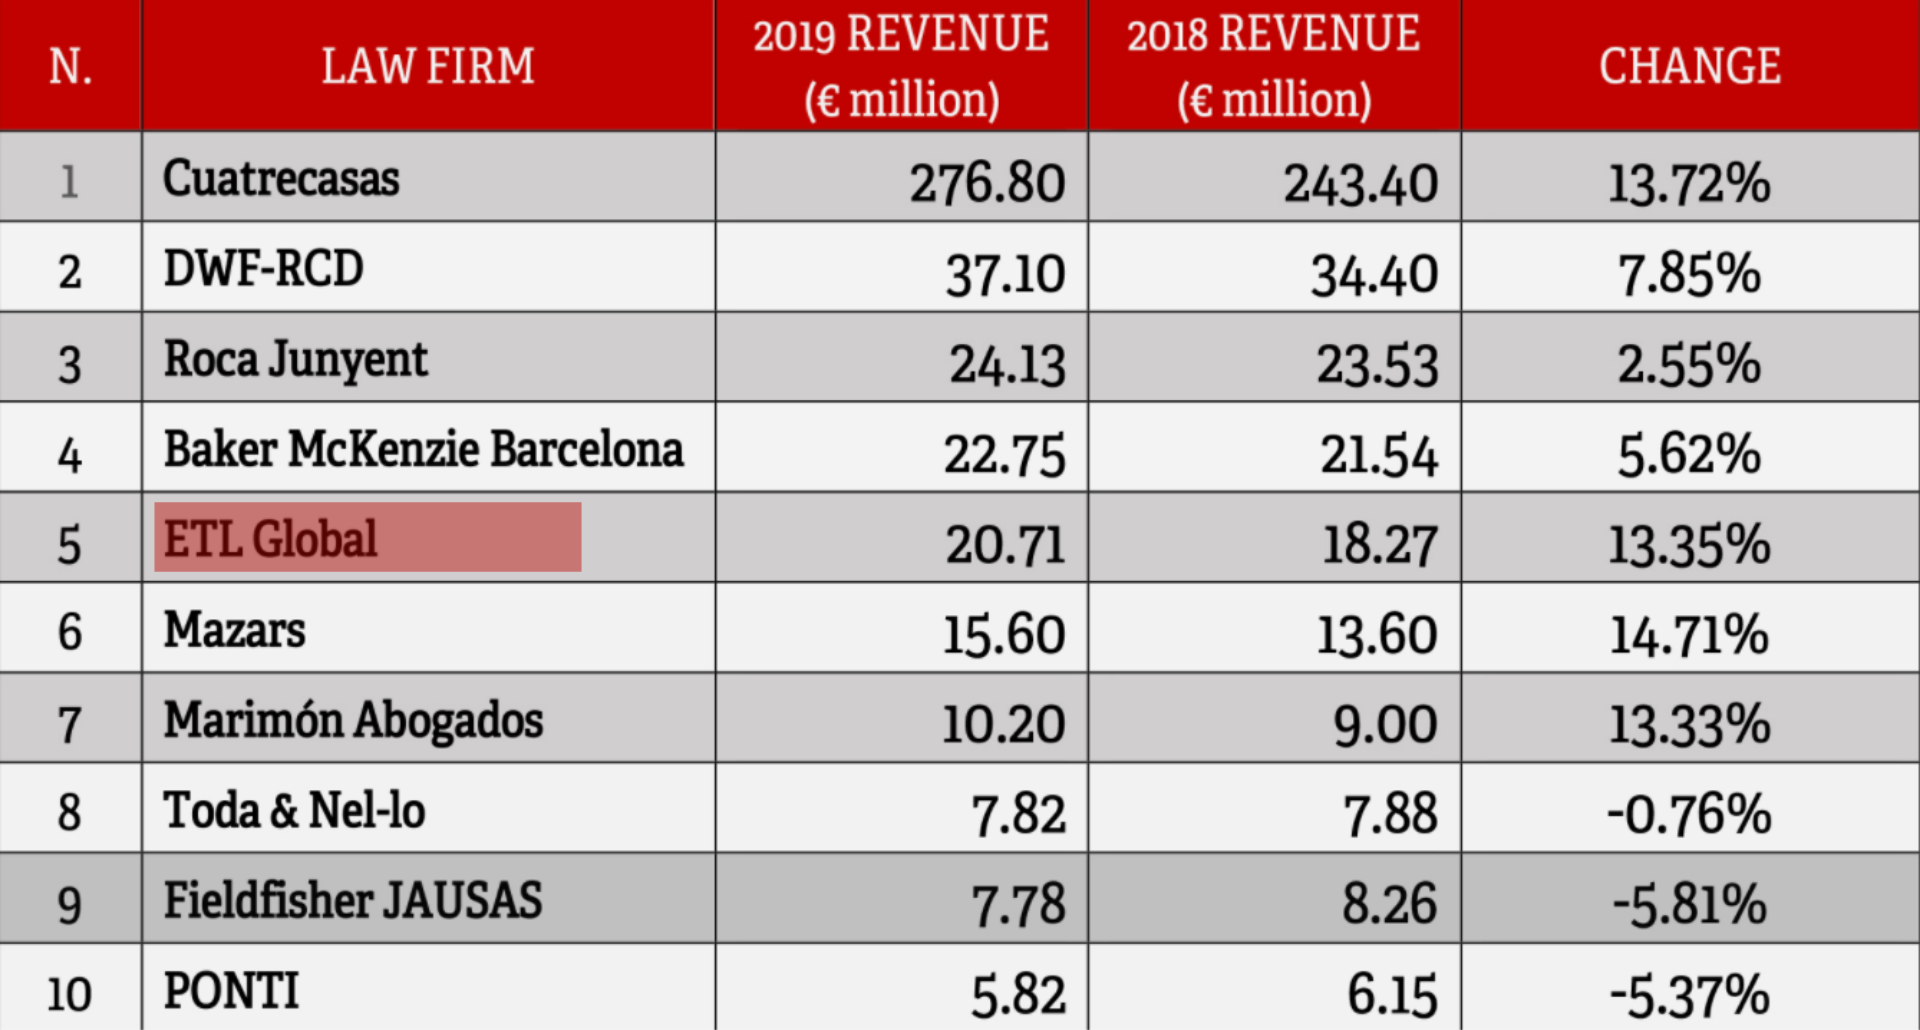 Top law firms by 2019 revenue in Catalonia